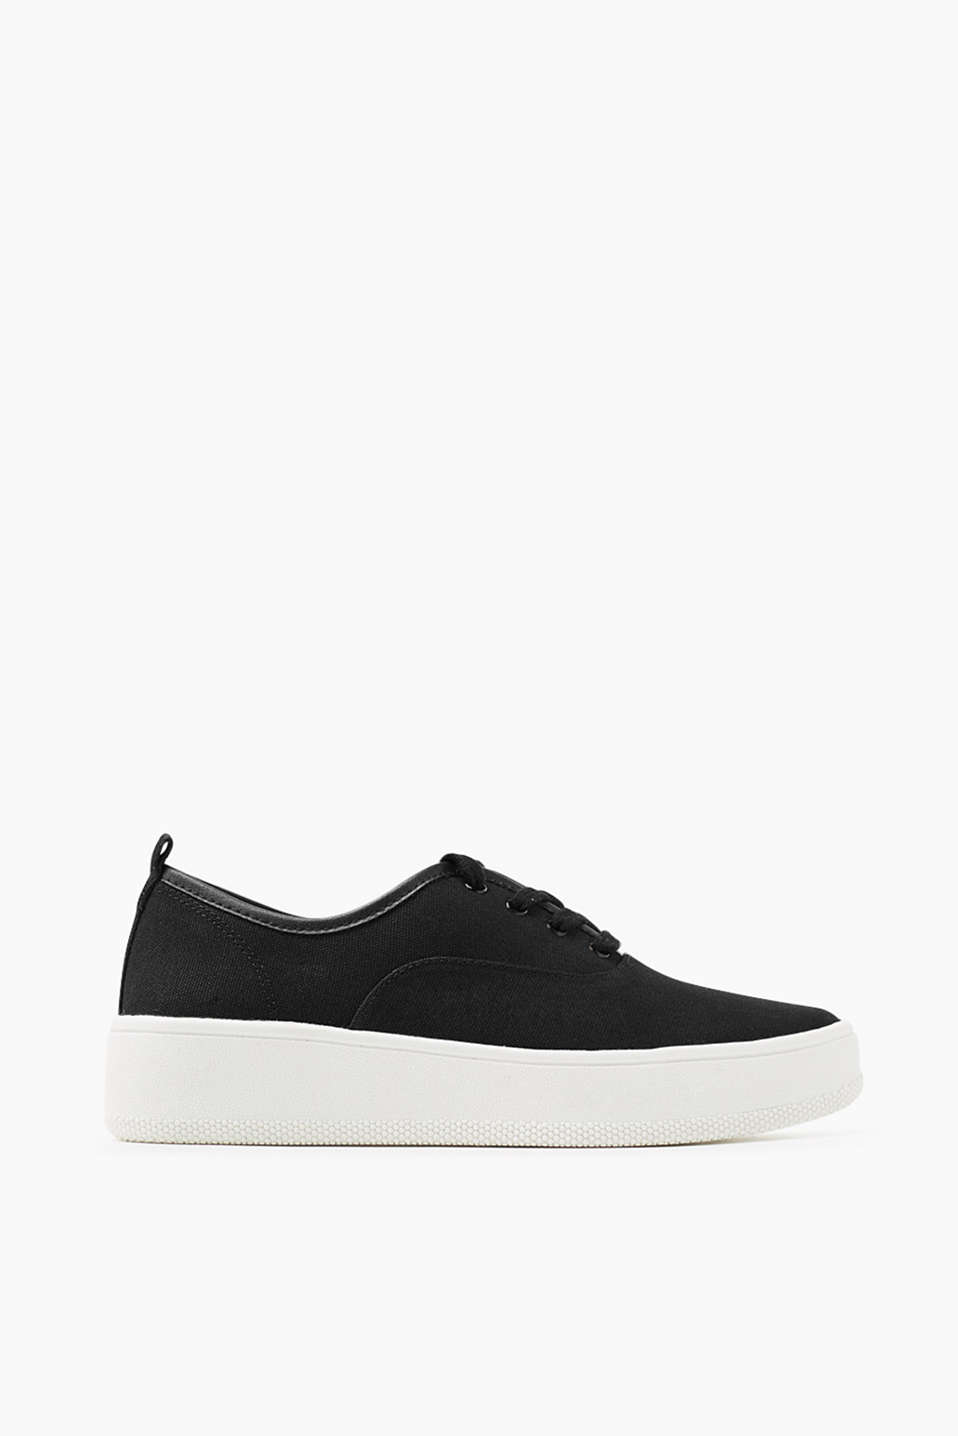 Flatform-style trainers in 100% cotton